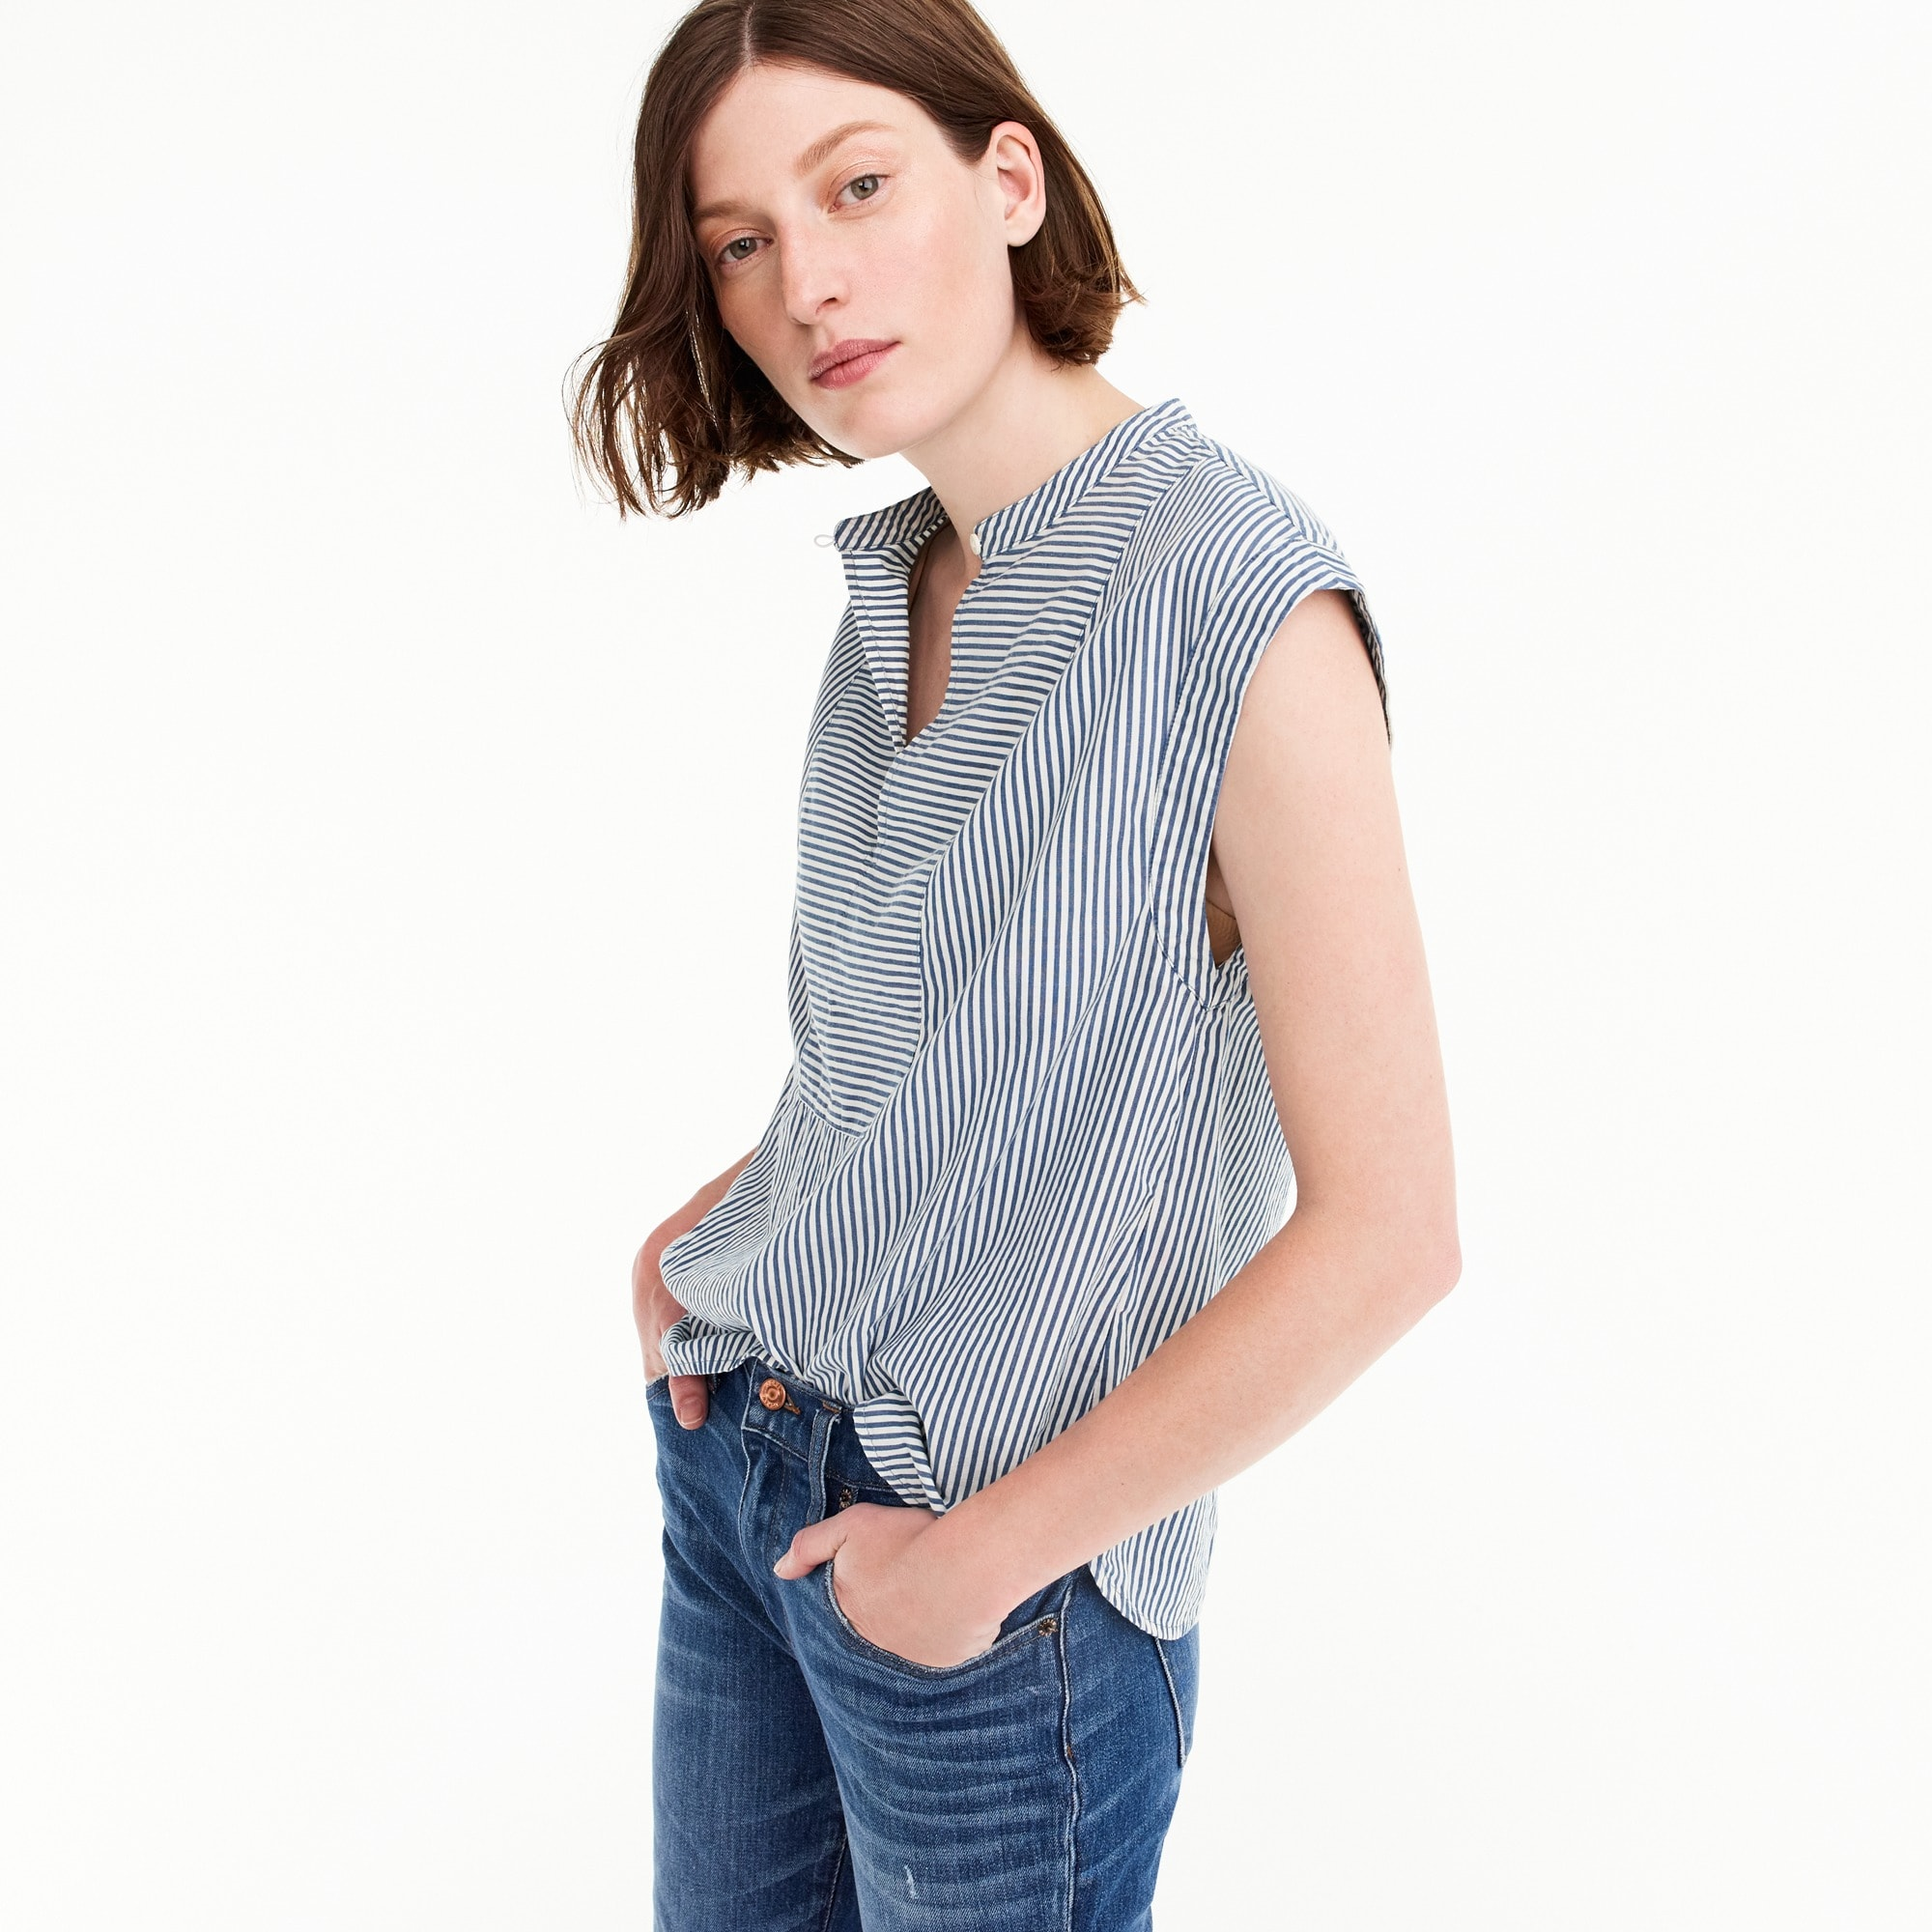 Cap-sleeve top in stripe women shirts & tops c